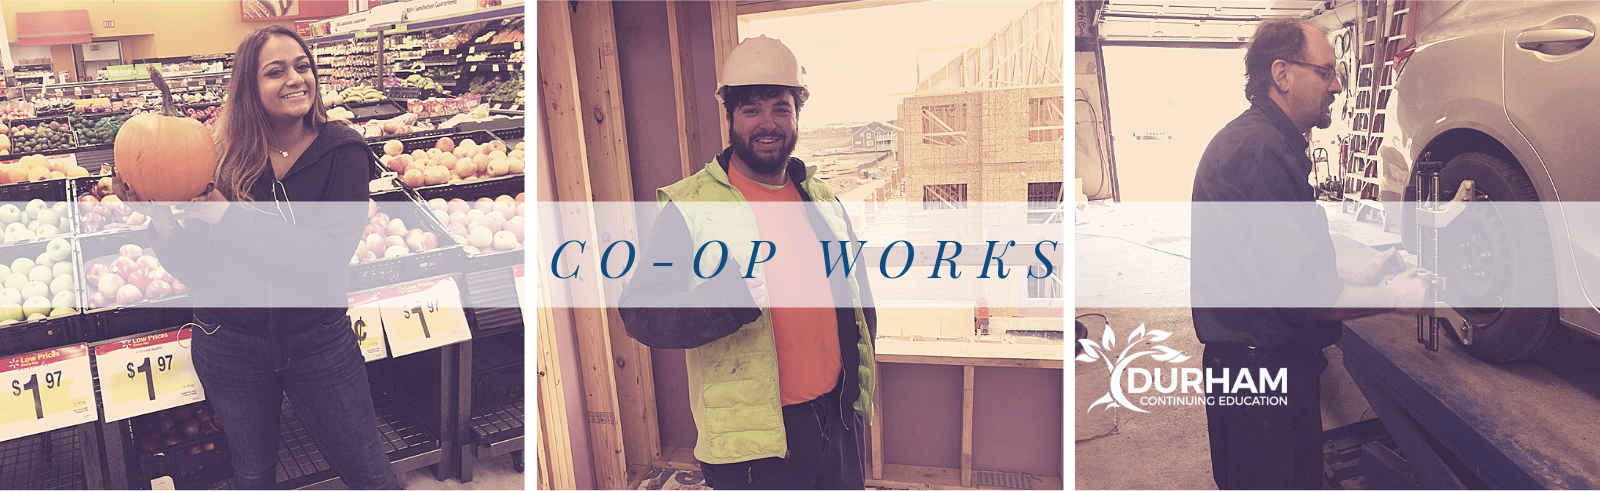 Co-op Works Page Banner